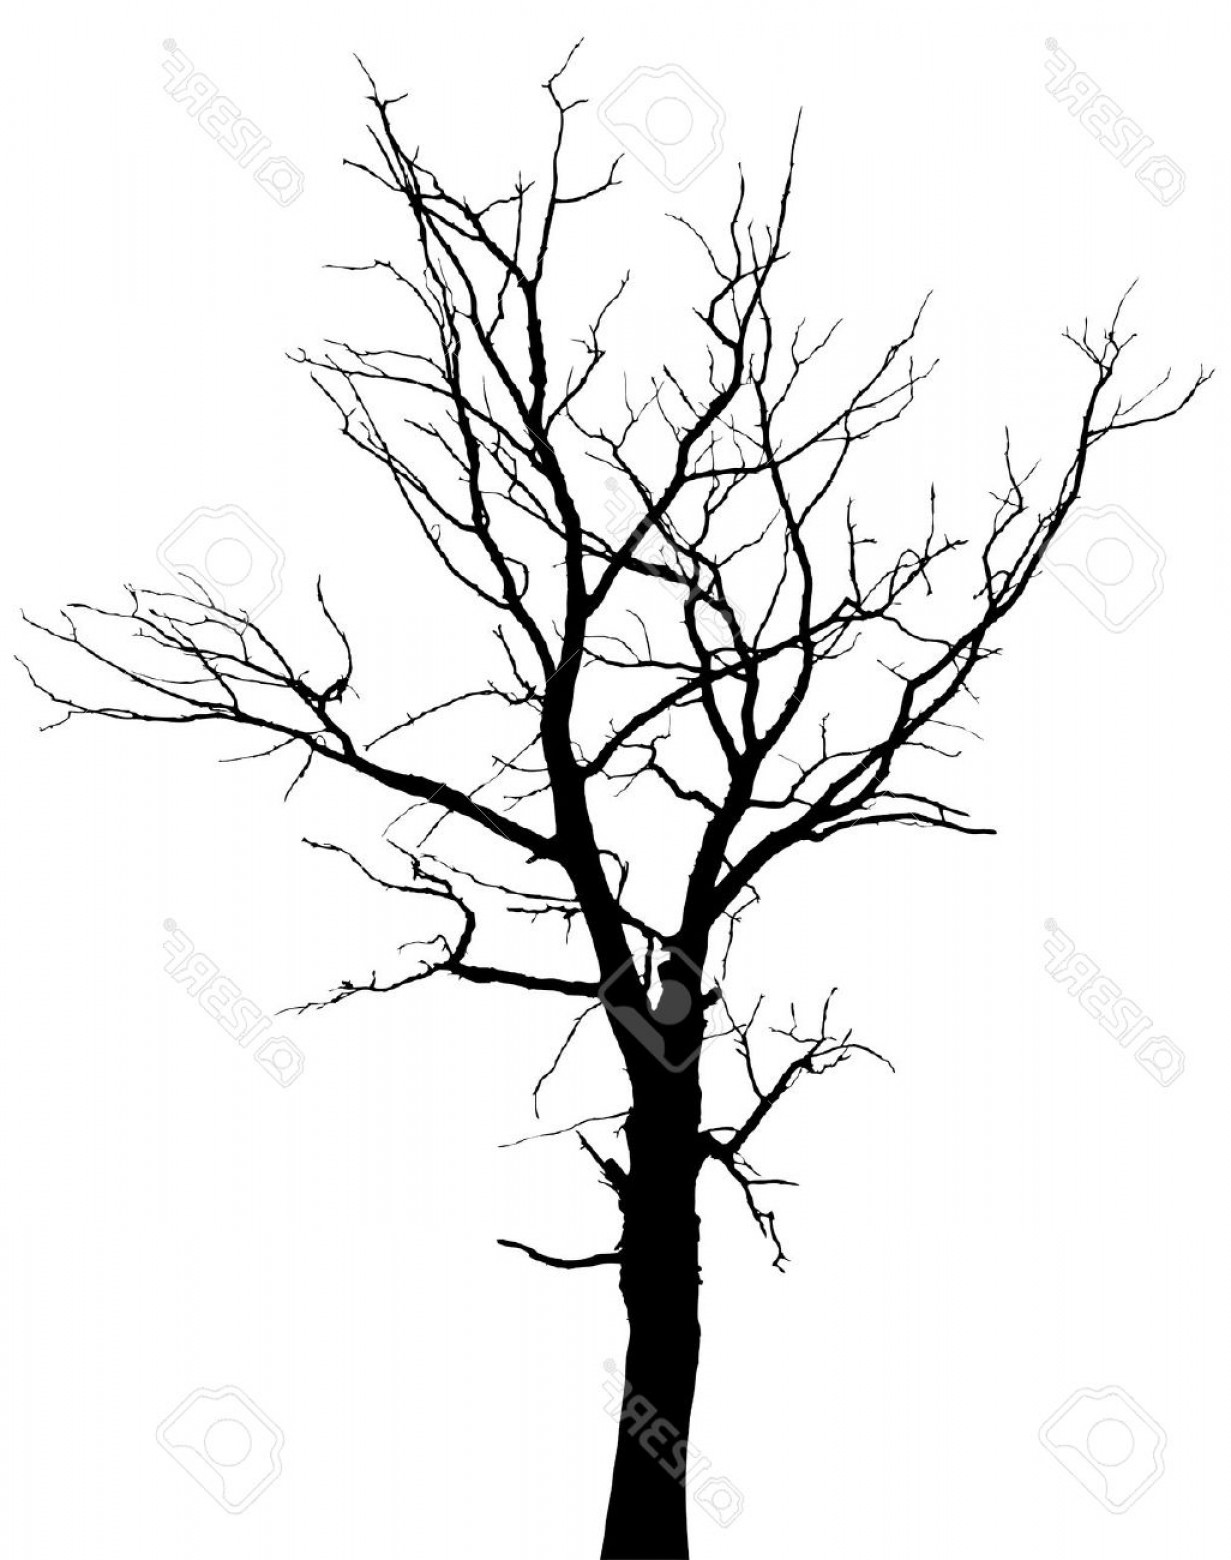 White tree black background clipart clip art black and white Barren Black Tree Clipart With Transparent Background   SOIDERGI clip art black and white